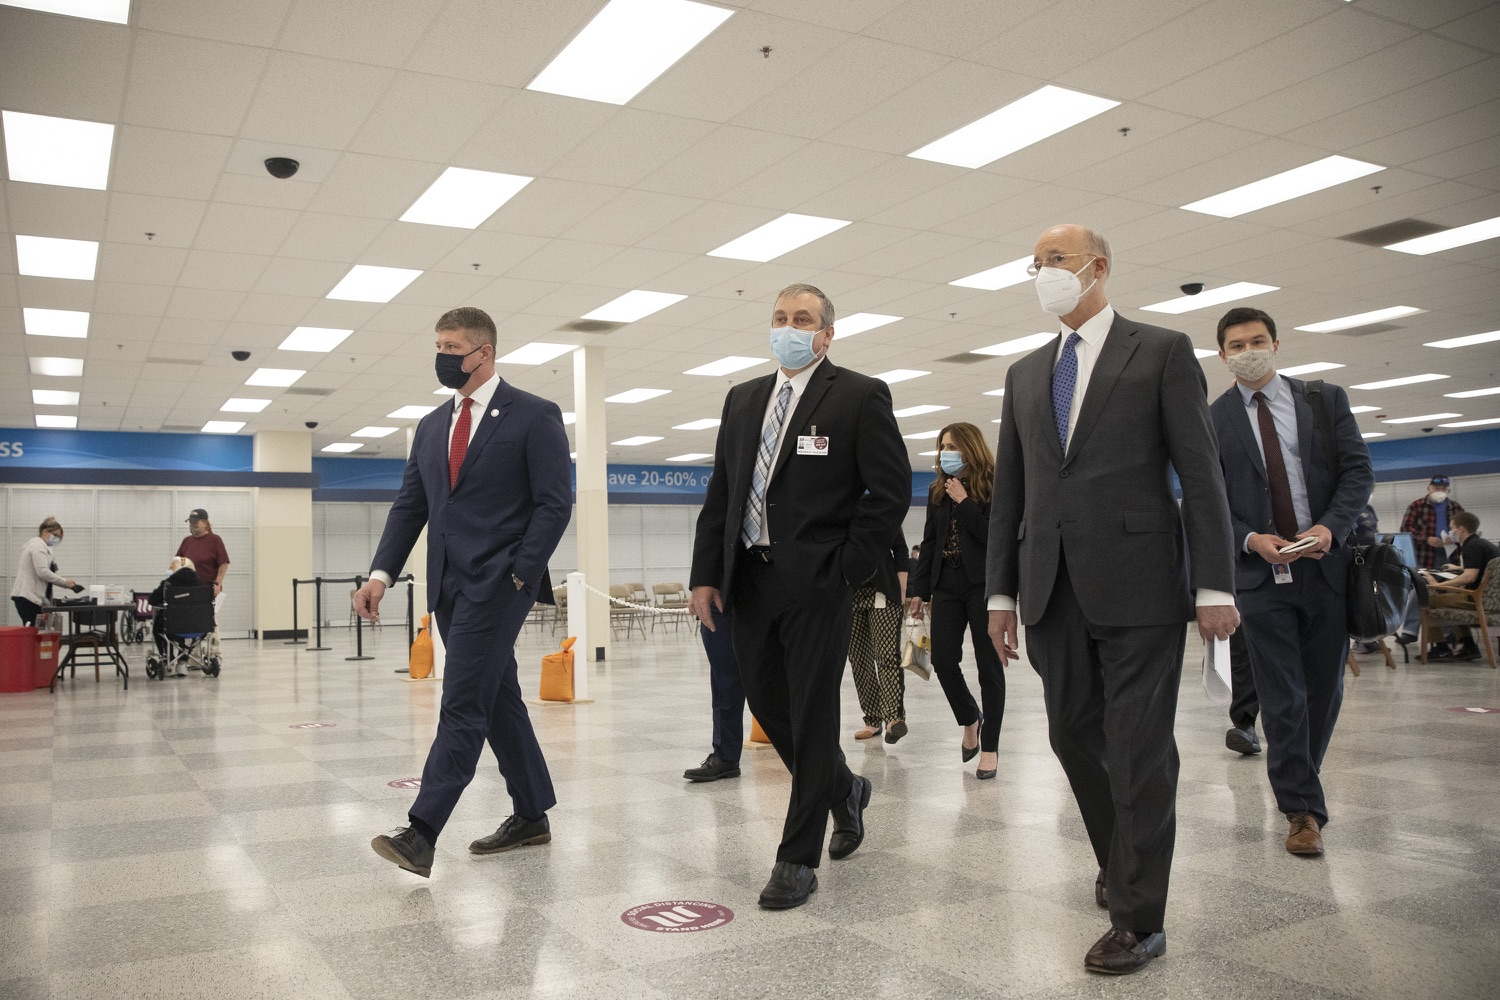 "<a href=""https://filesource.wostreaming.net/commonwealthofpa/photo/18712_gov_vaccines_dz_016.jpg"" target=""_blank"">⇣ Download Photo<br></a>Pennsylvania Governor Tom Wolf touring the vaccine facility with  Brook Ward, Washington Health System CEO & President and Pennsylvania State Representative Tim O'Neal.Continuing to visit COVID-19 vaccine clinics around the state, Governor Tom Wolf toured a clinic at the Washington Crown Center in Washington County today. The clinic is one of three operated by the Washington Health System (WHS) serving rural communities in southwestern Pennsylvania.  North Franklin Township, PA  April 28, 2021"